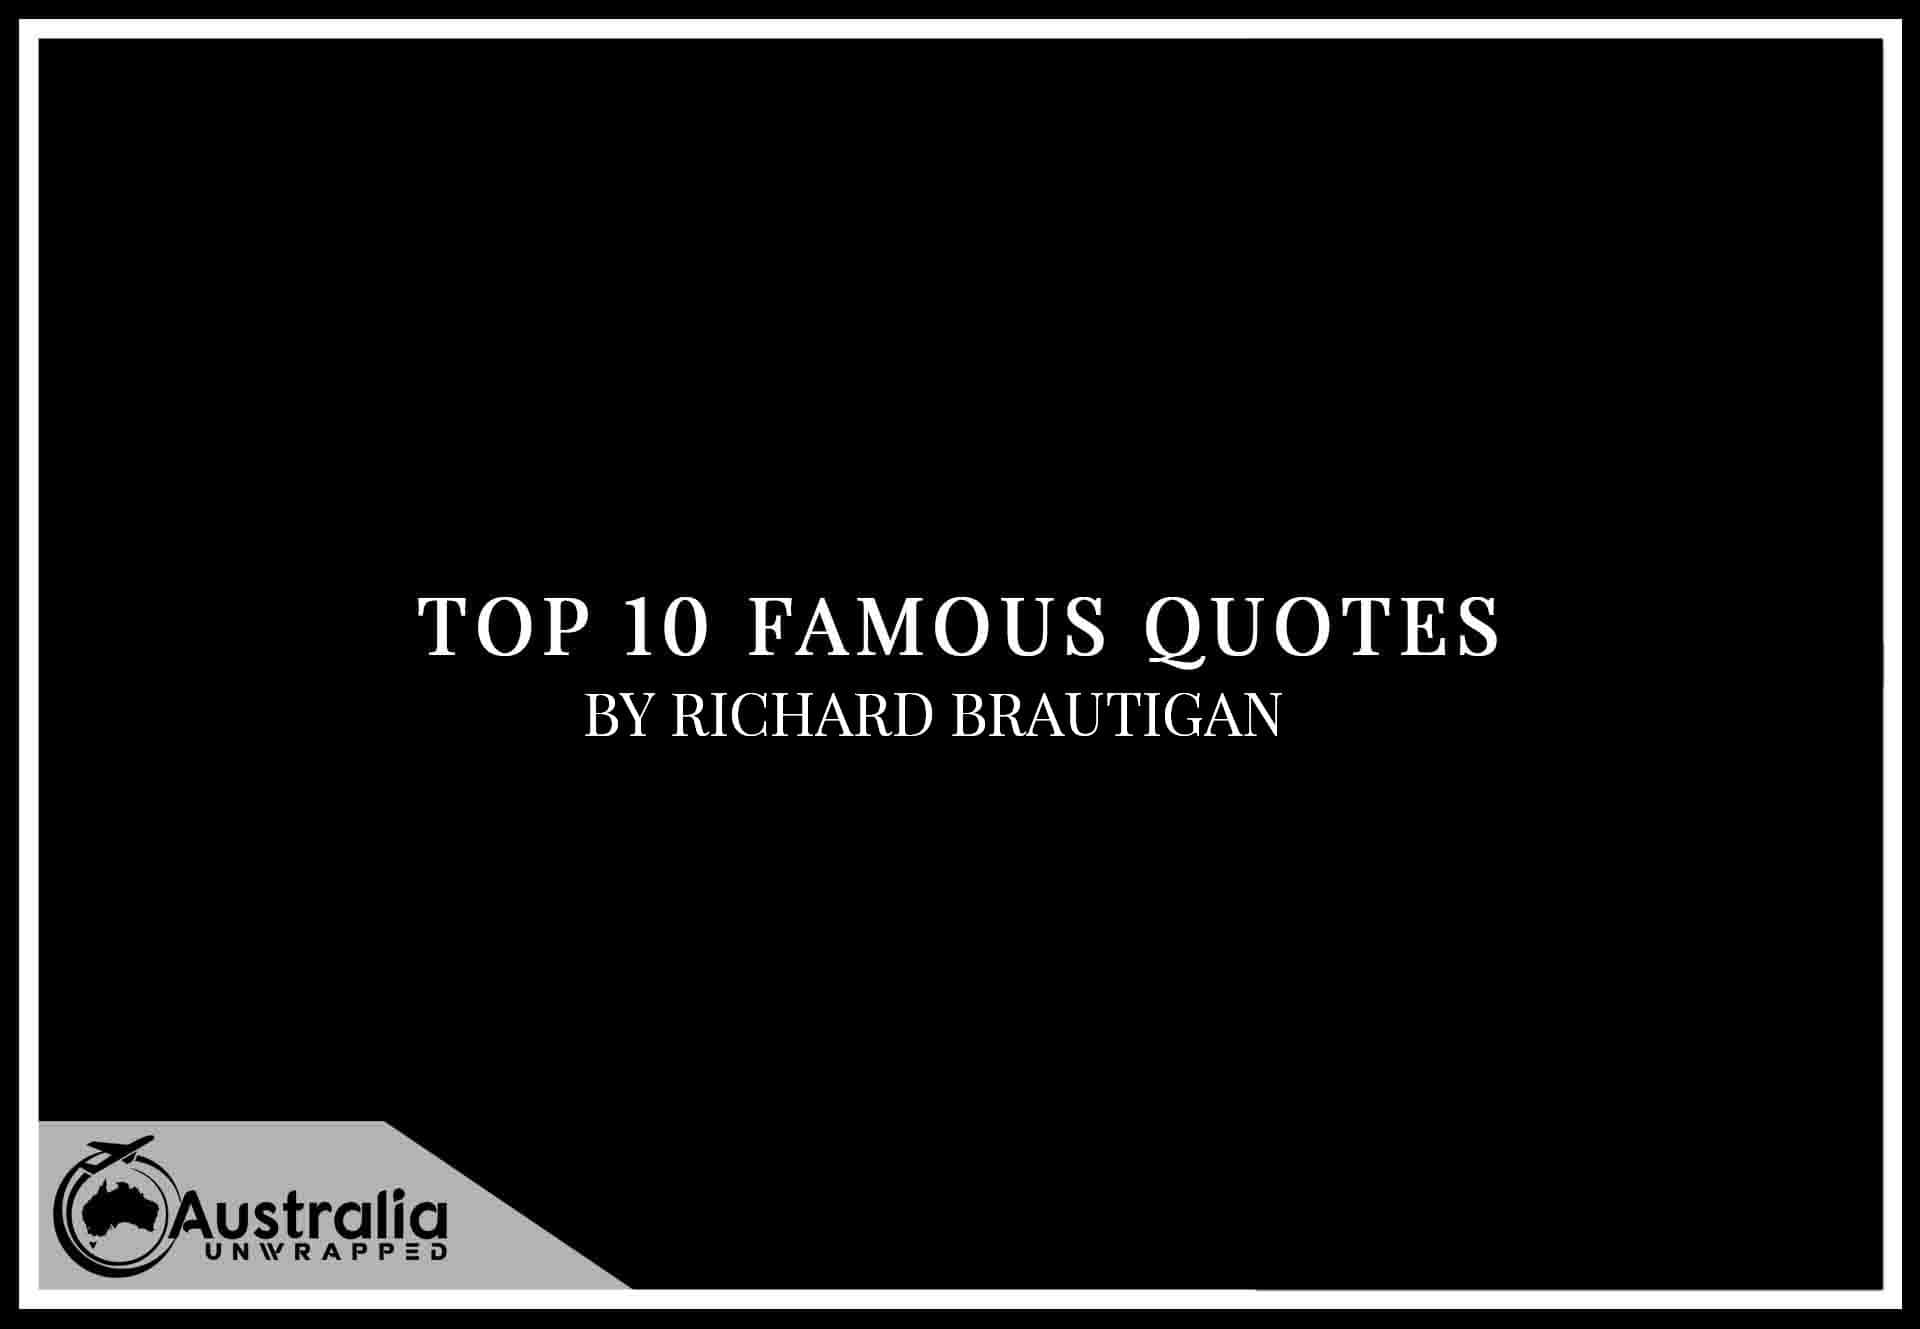 Top 10 Famous Quotes by Author Richard Brautigan